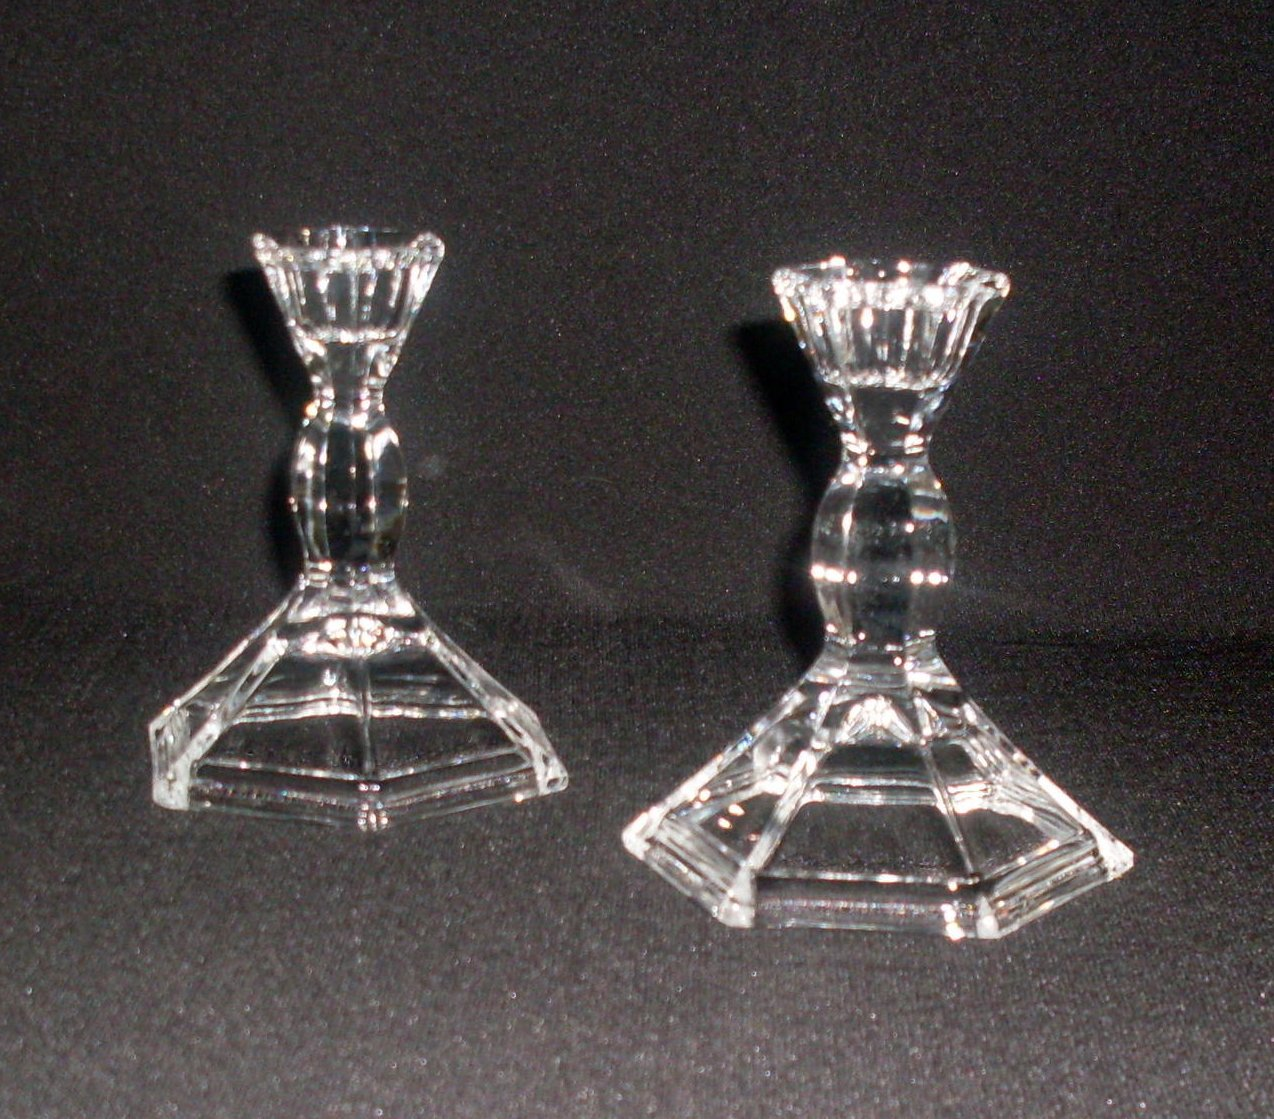 Elegant Six Sided Crystal Candlesticks, Set of 2